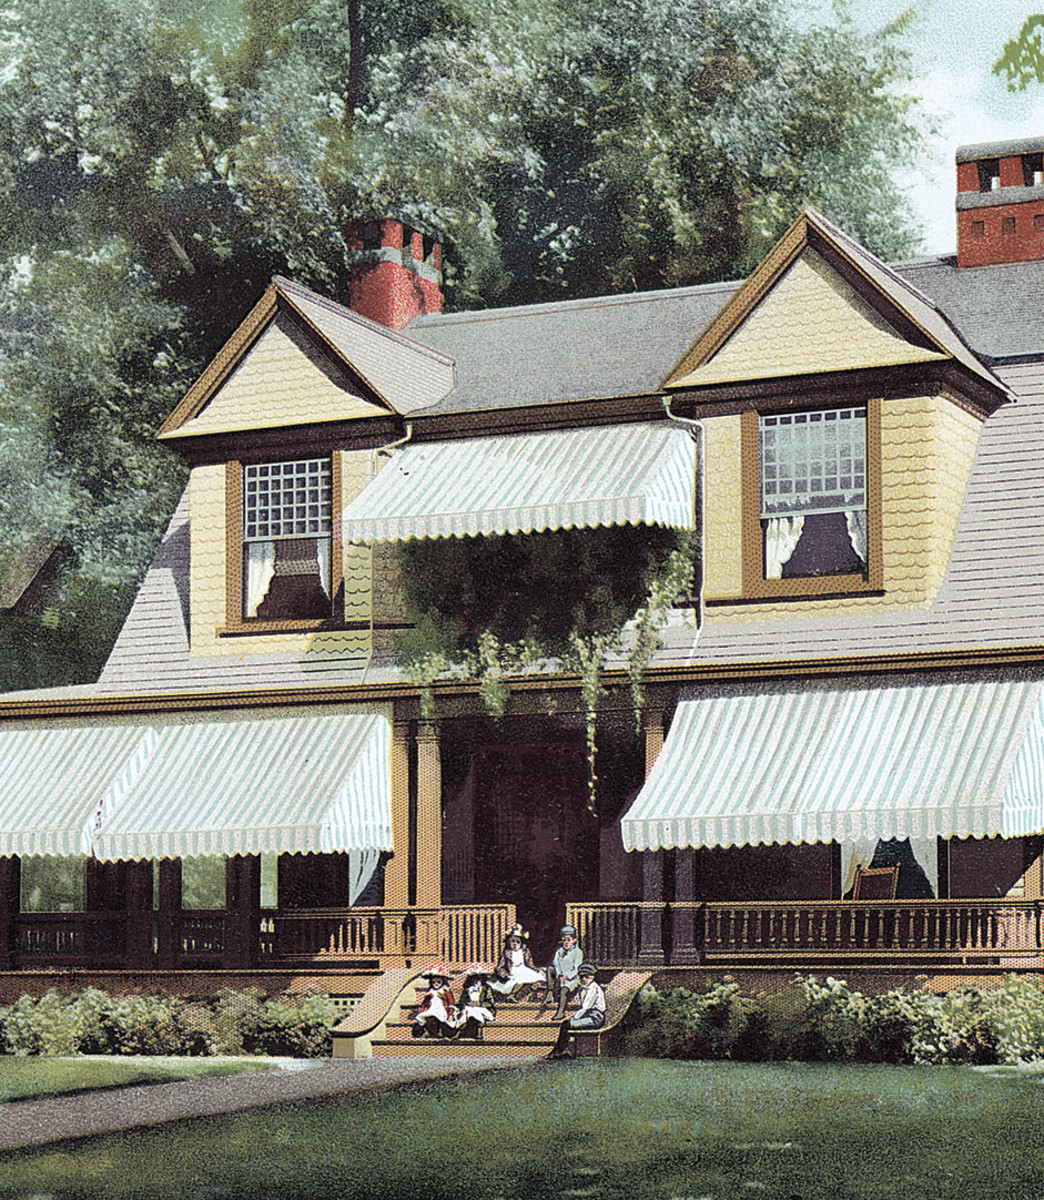 Blue-striped awnings lend summery appeal to a house featured in an 1893 magazine.